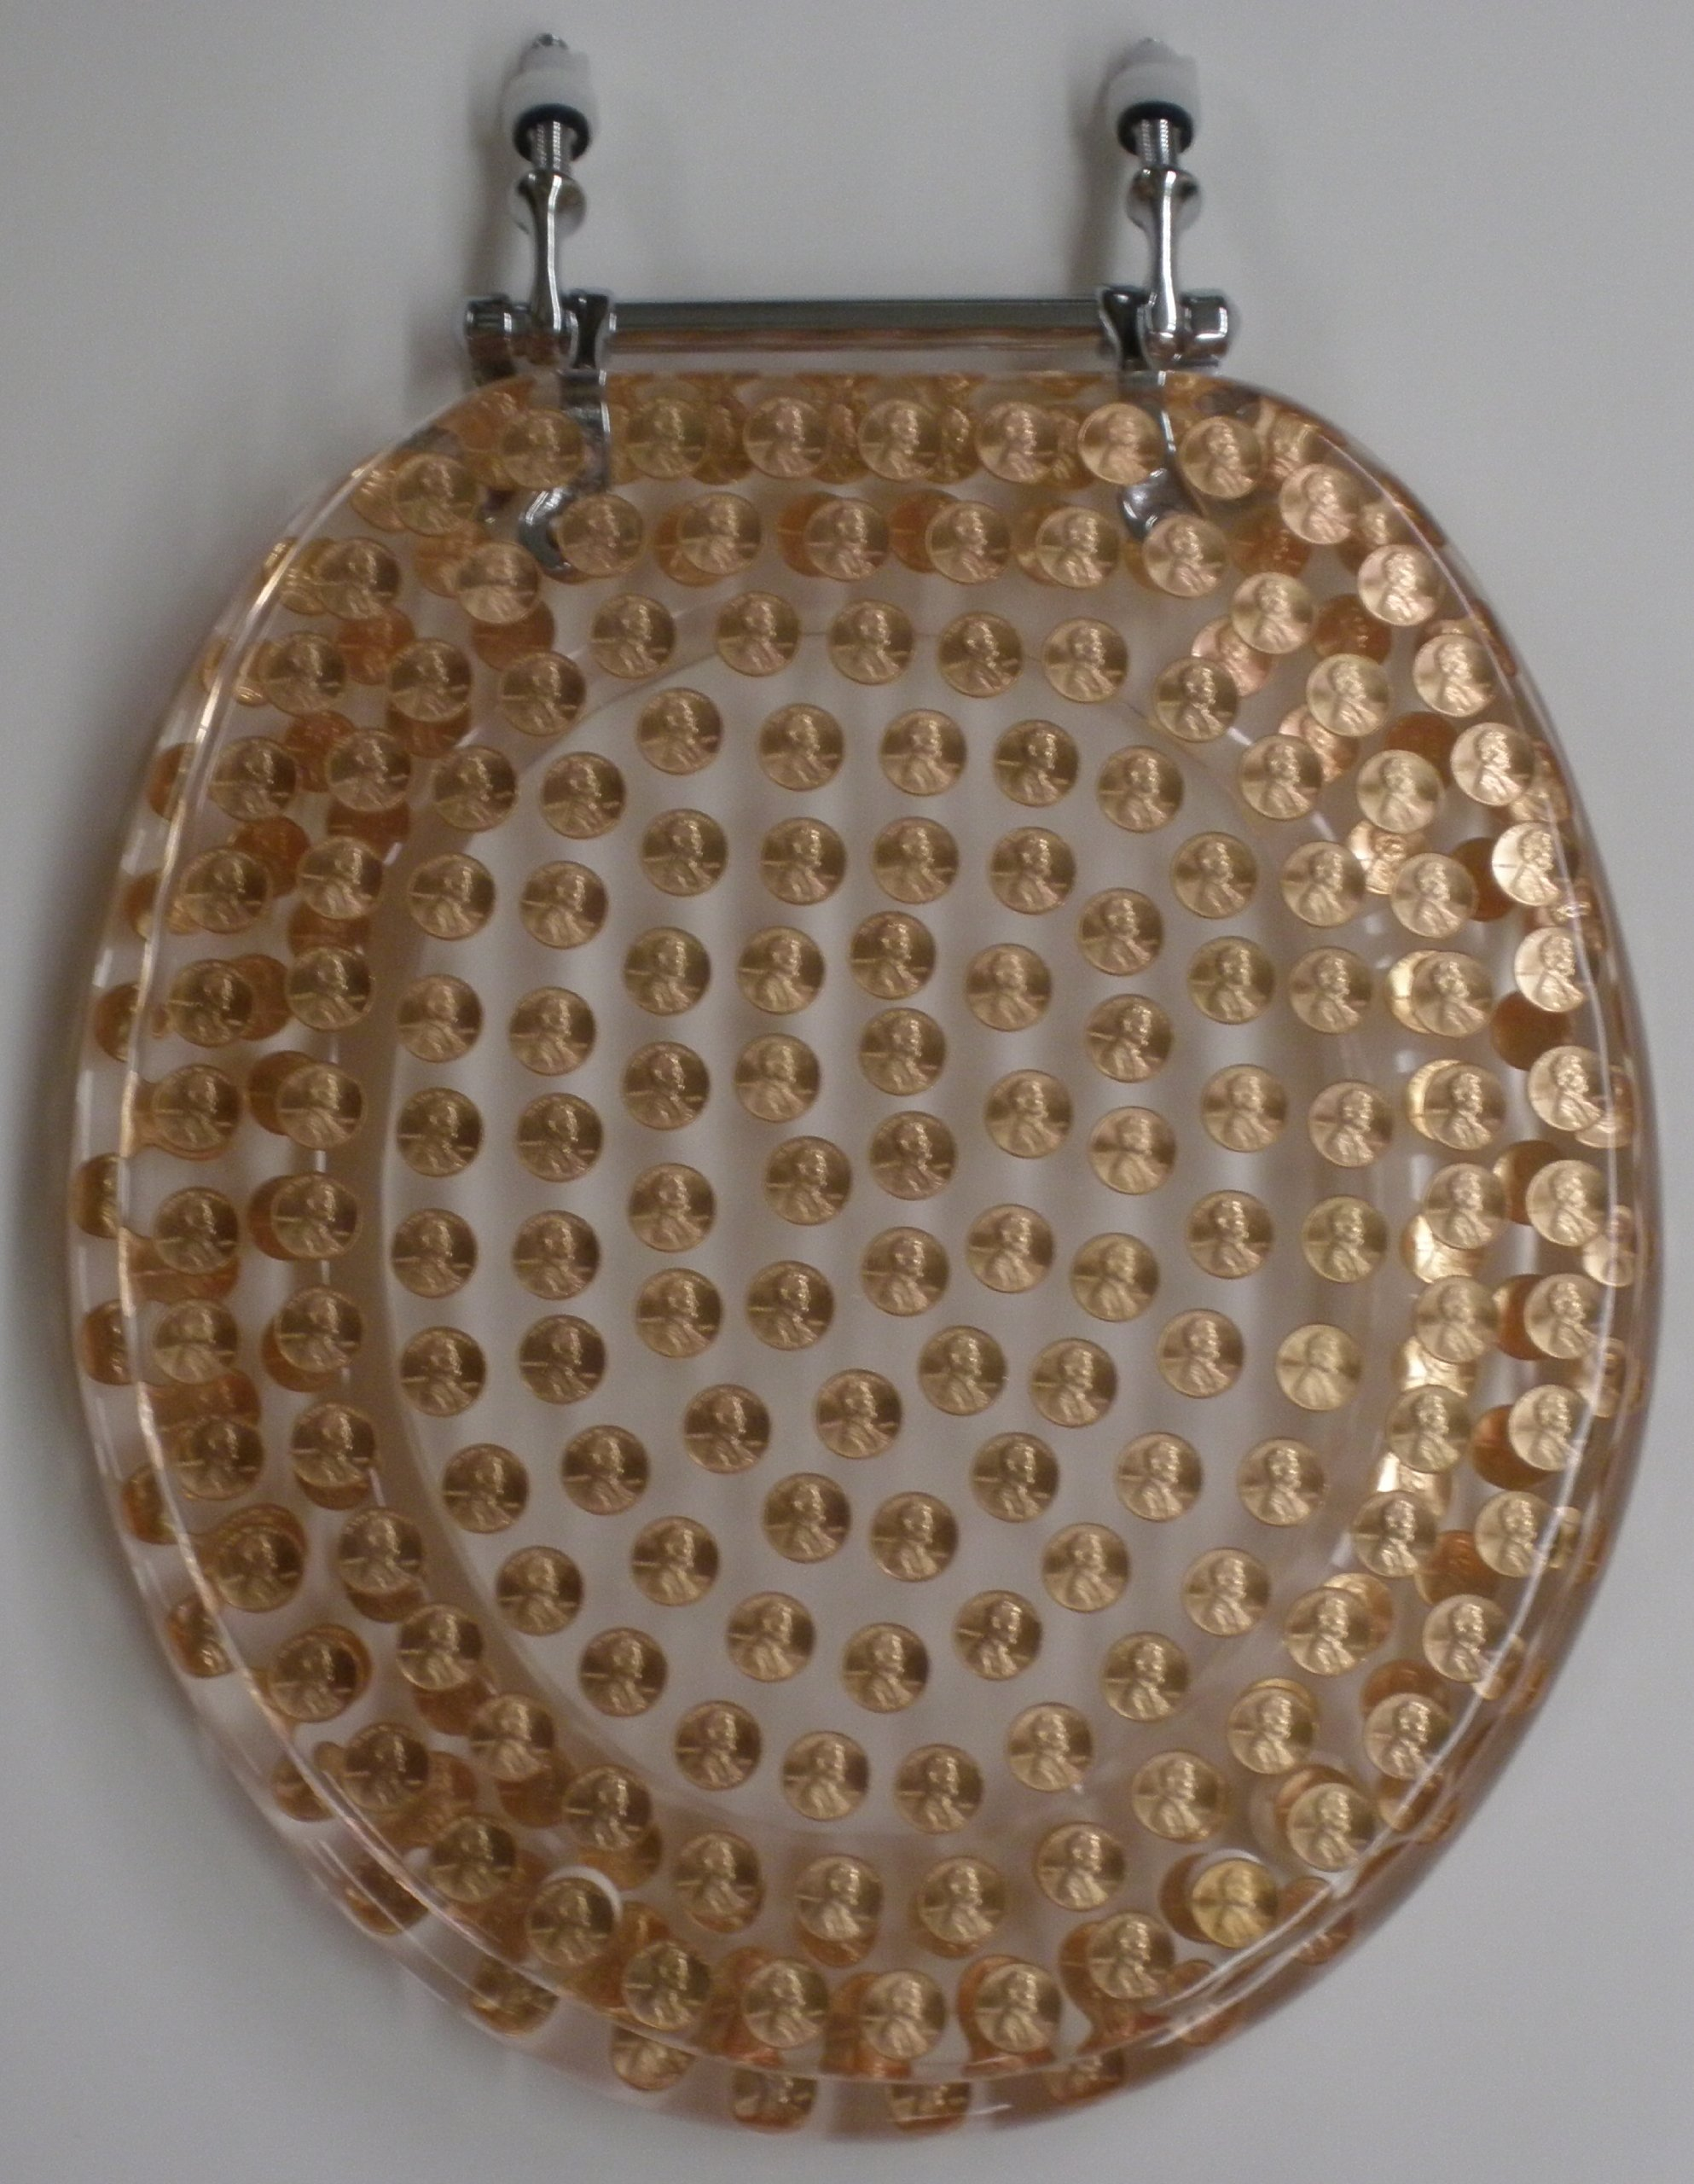 REAL U.S. PENNIES COINS MONEY LUCITE RESIN TOILET SEAT , Elongated Size Penny Toilet Seat (14.5'' x18'')